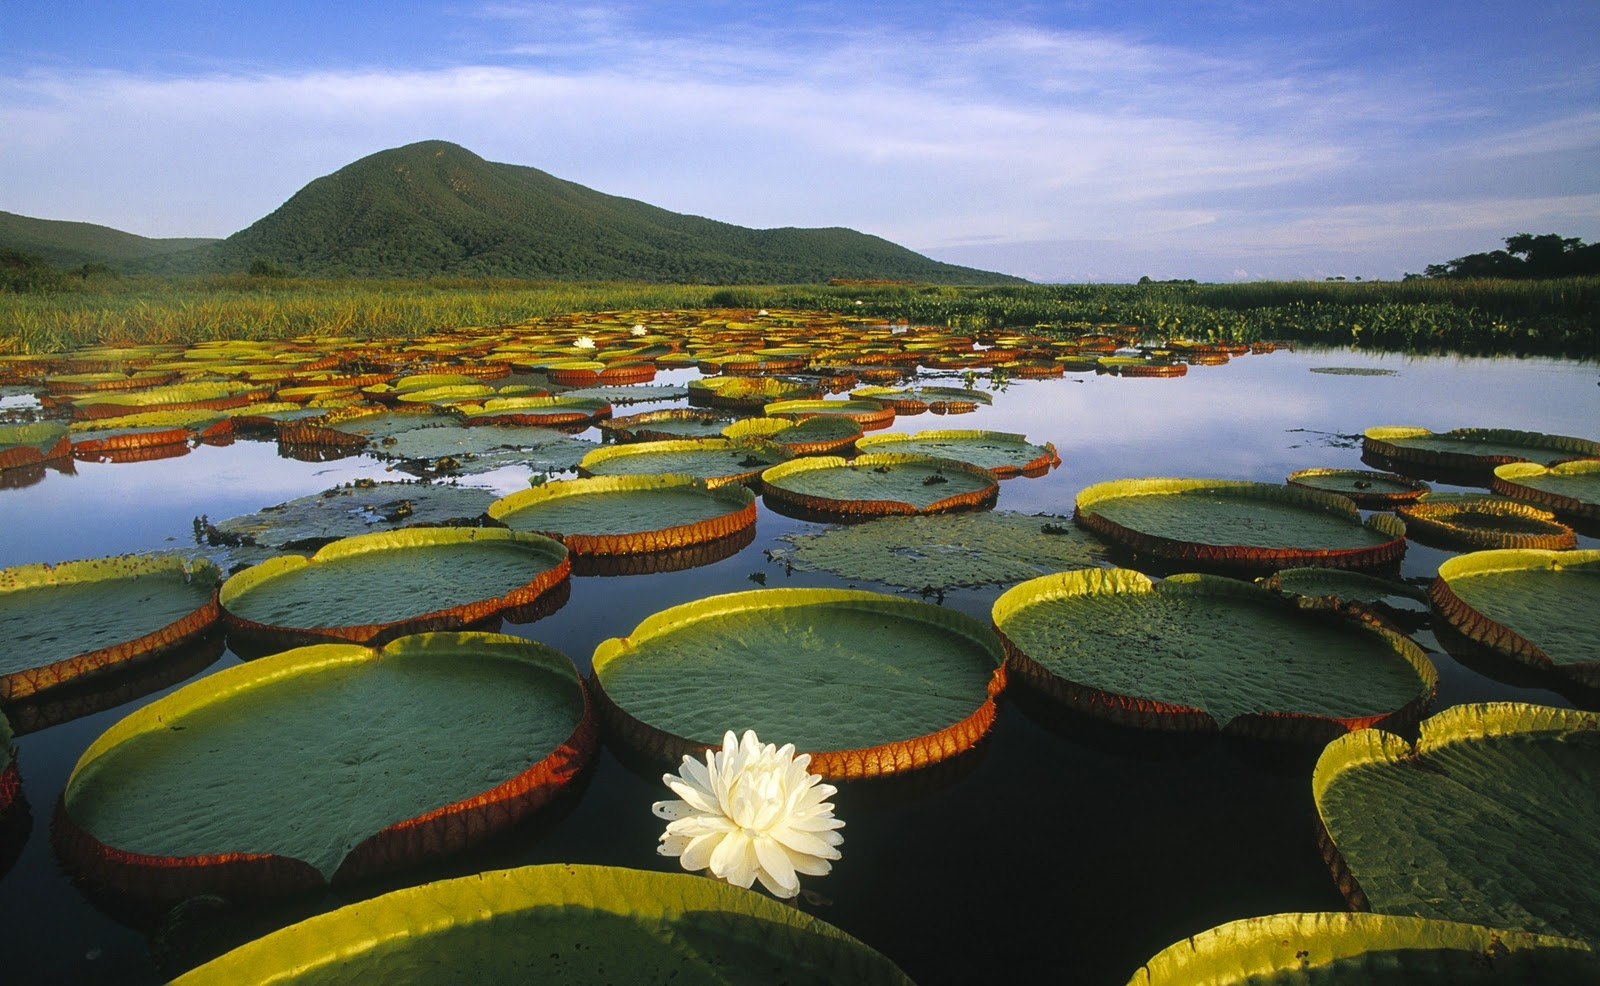 Lotus Flower in a Large River